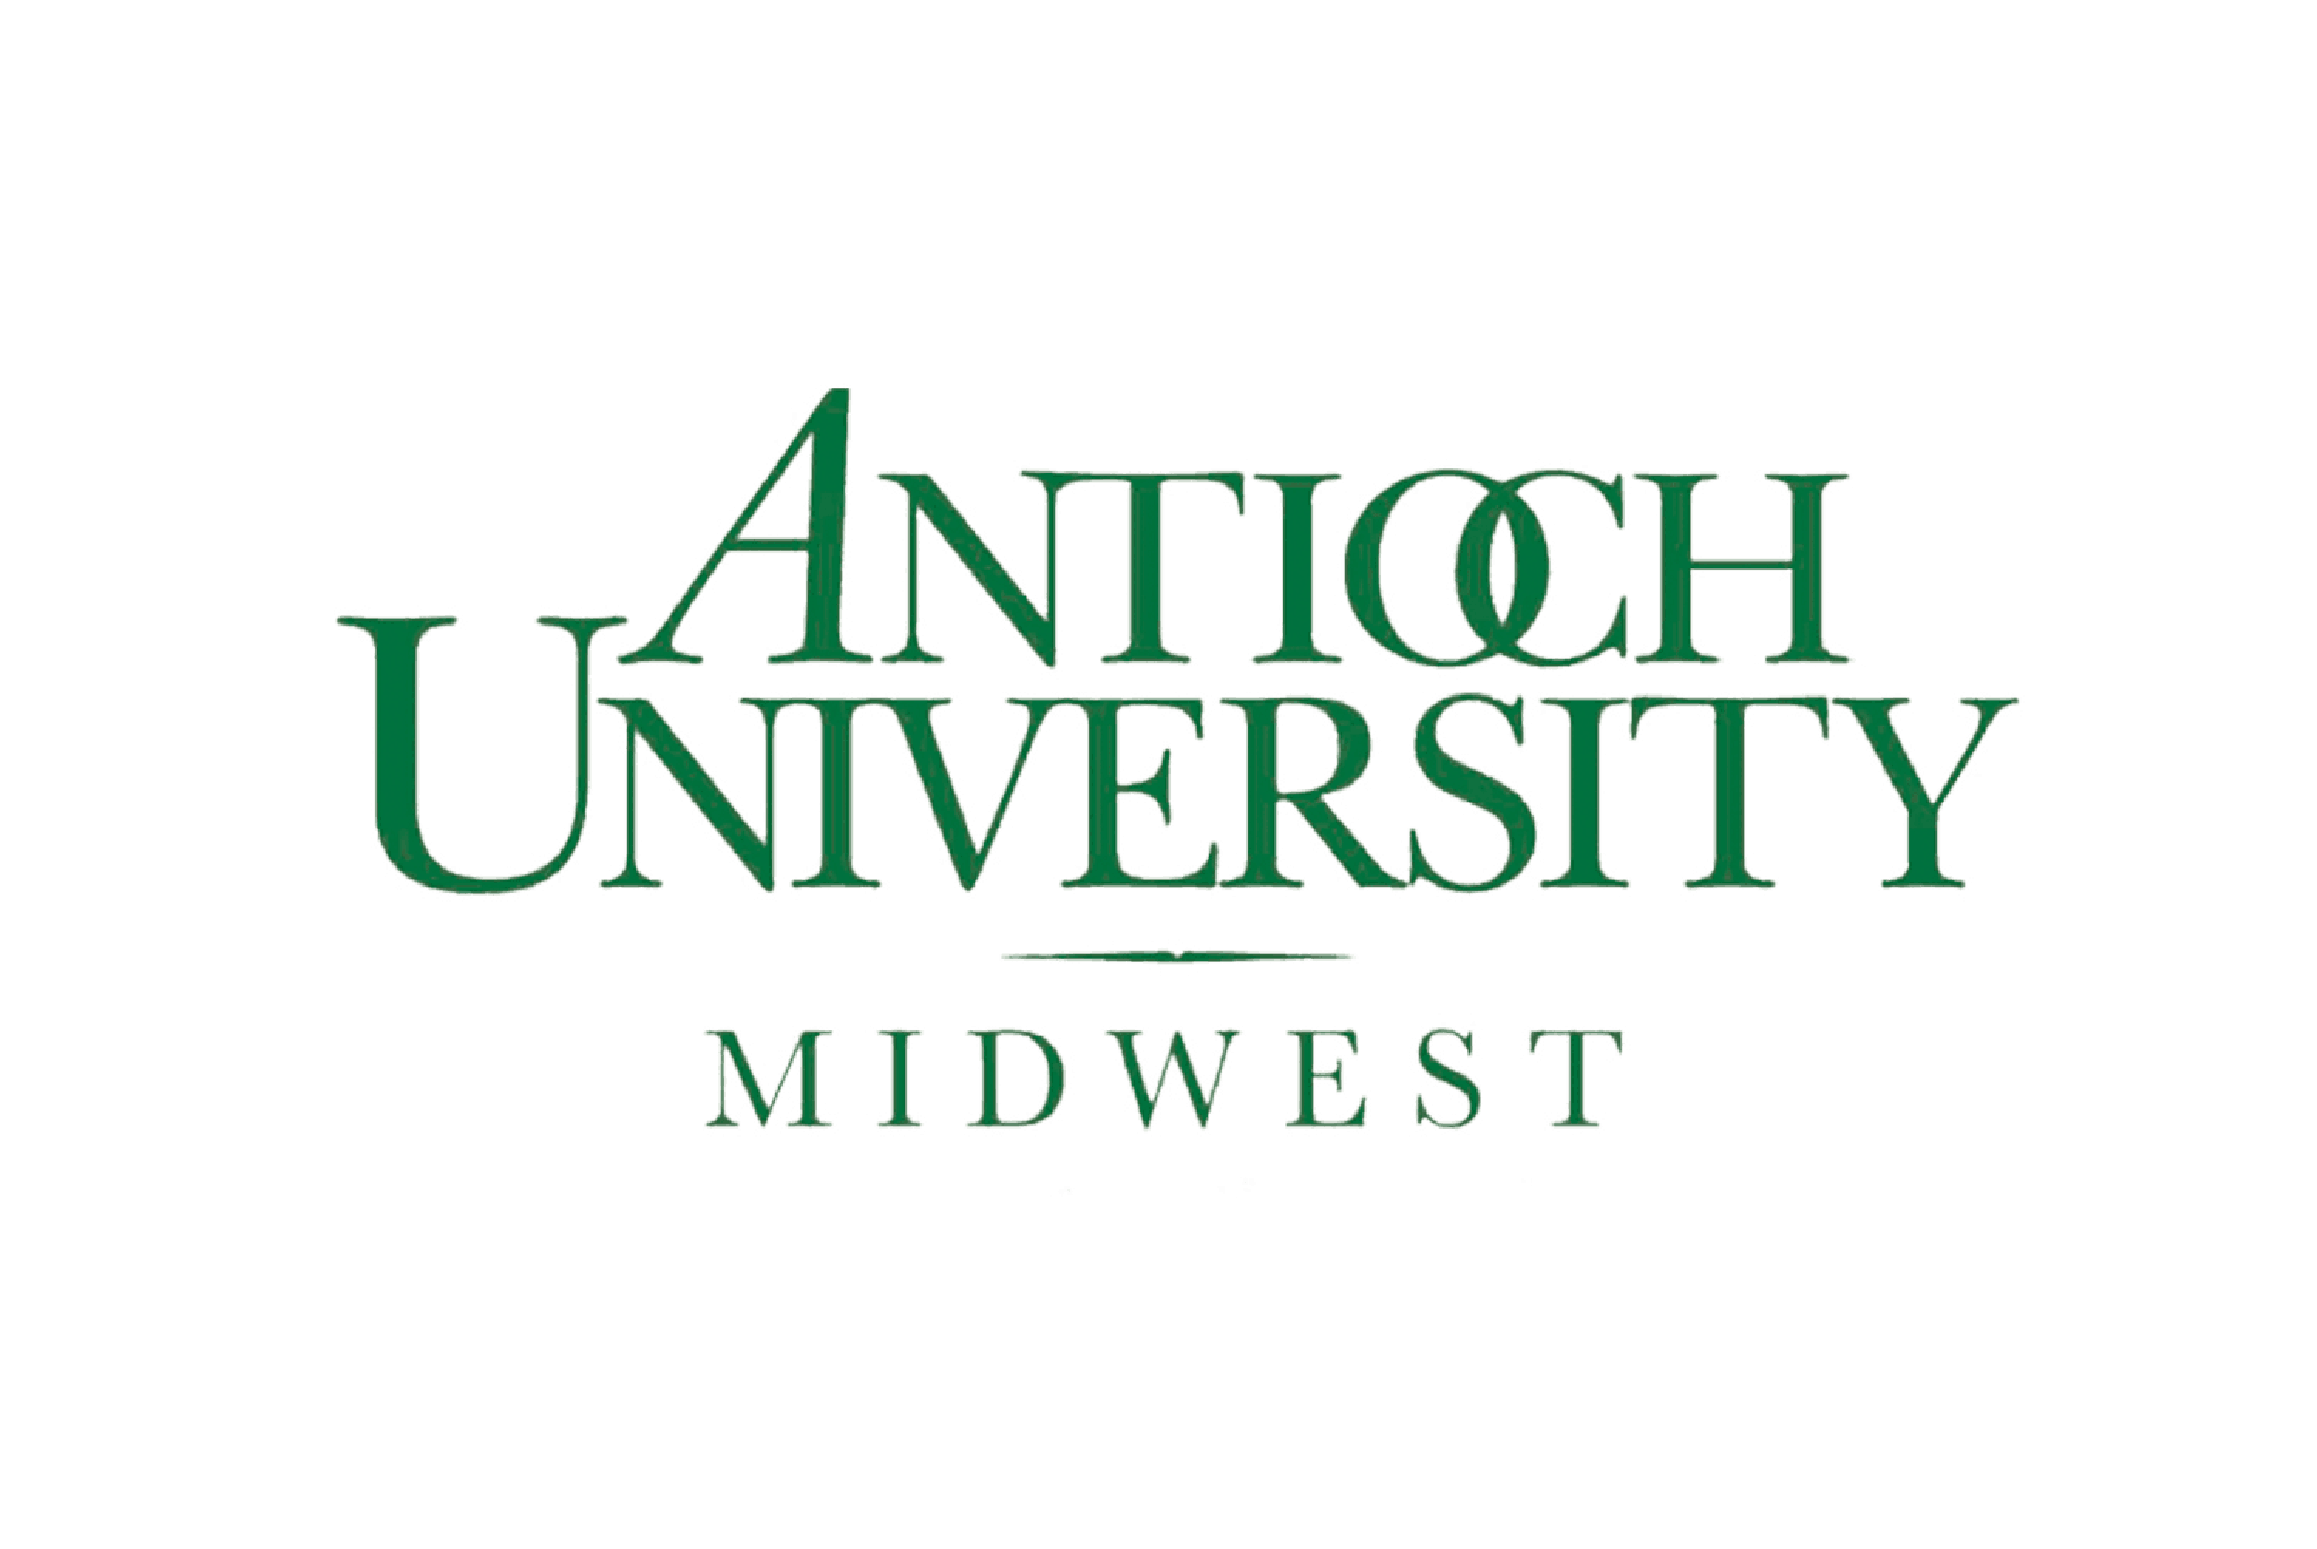 antioch university midwest logo 5133